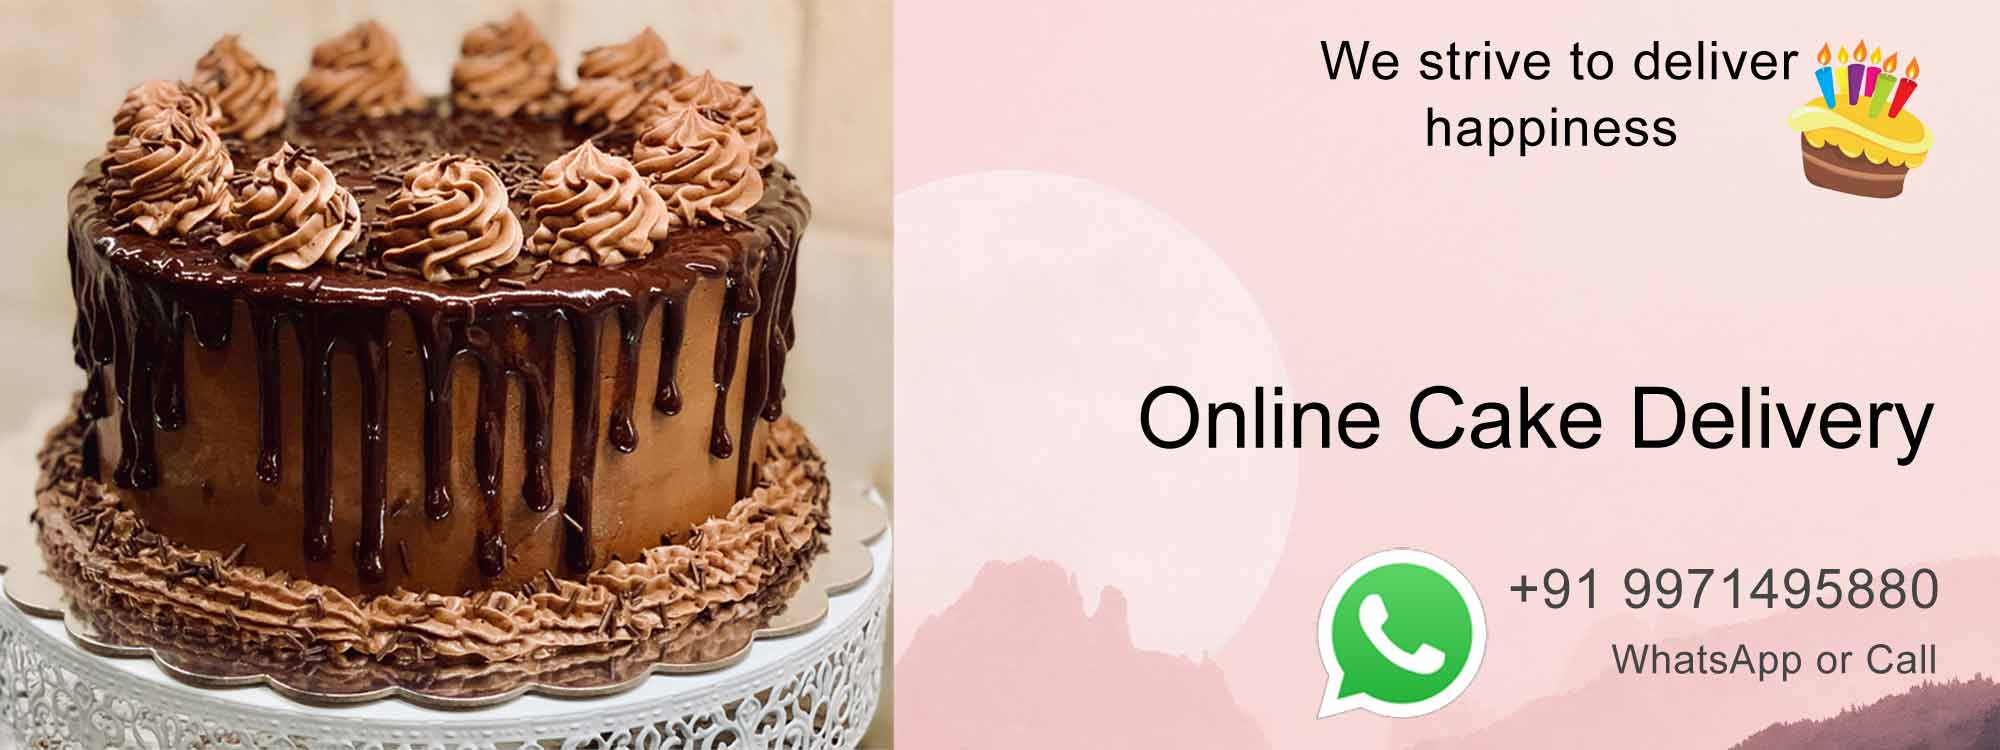 Online Cake Delivery 24x7